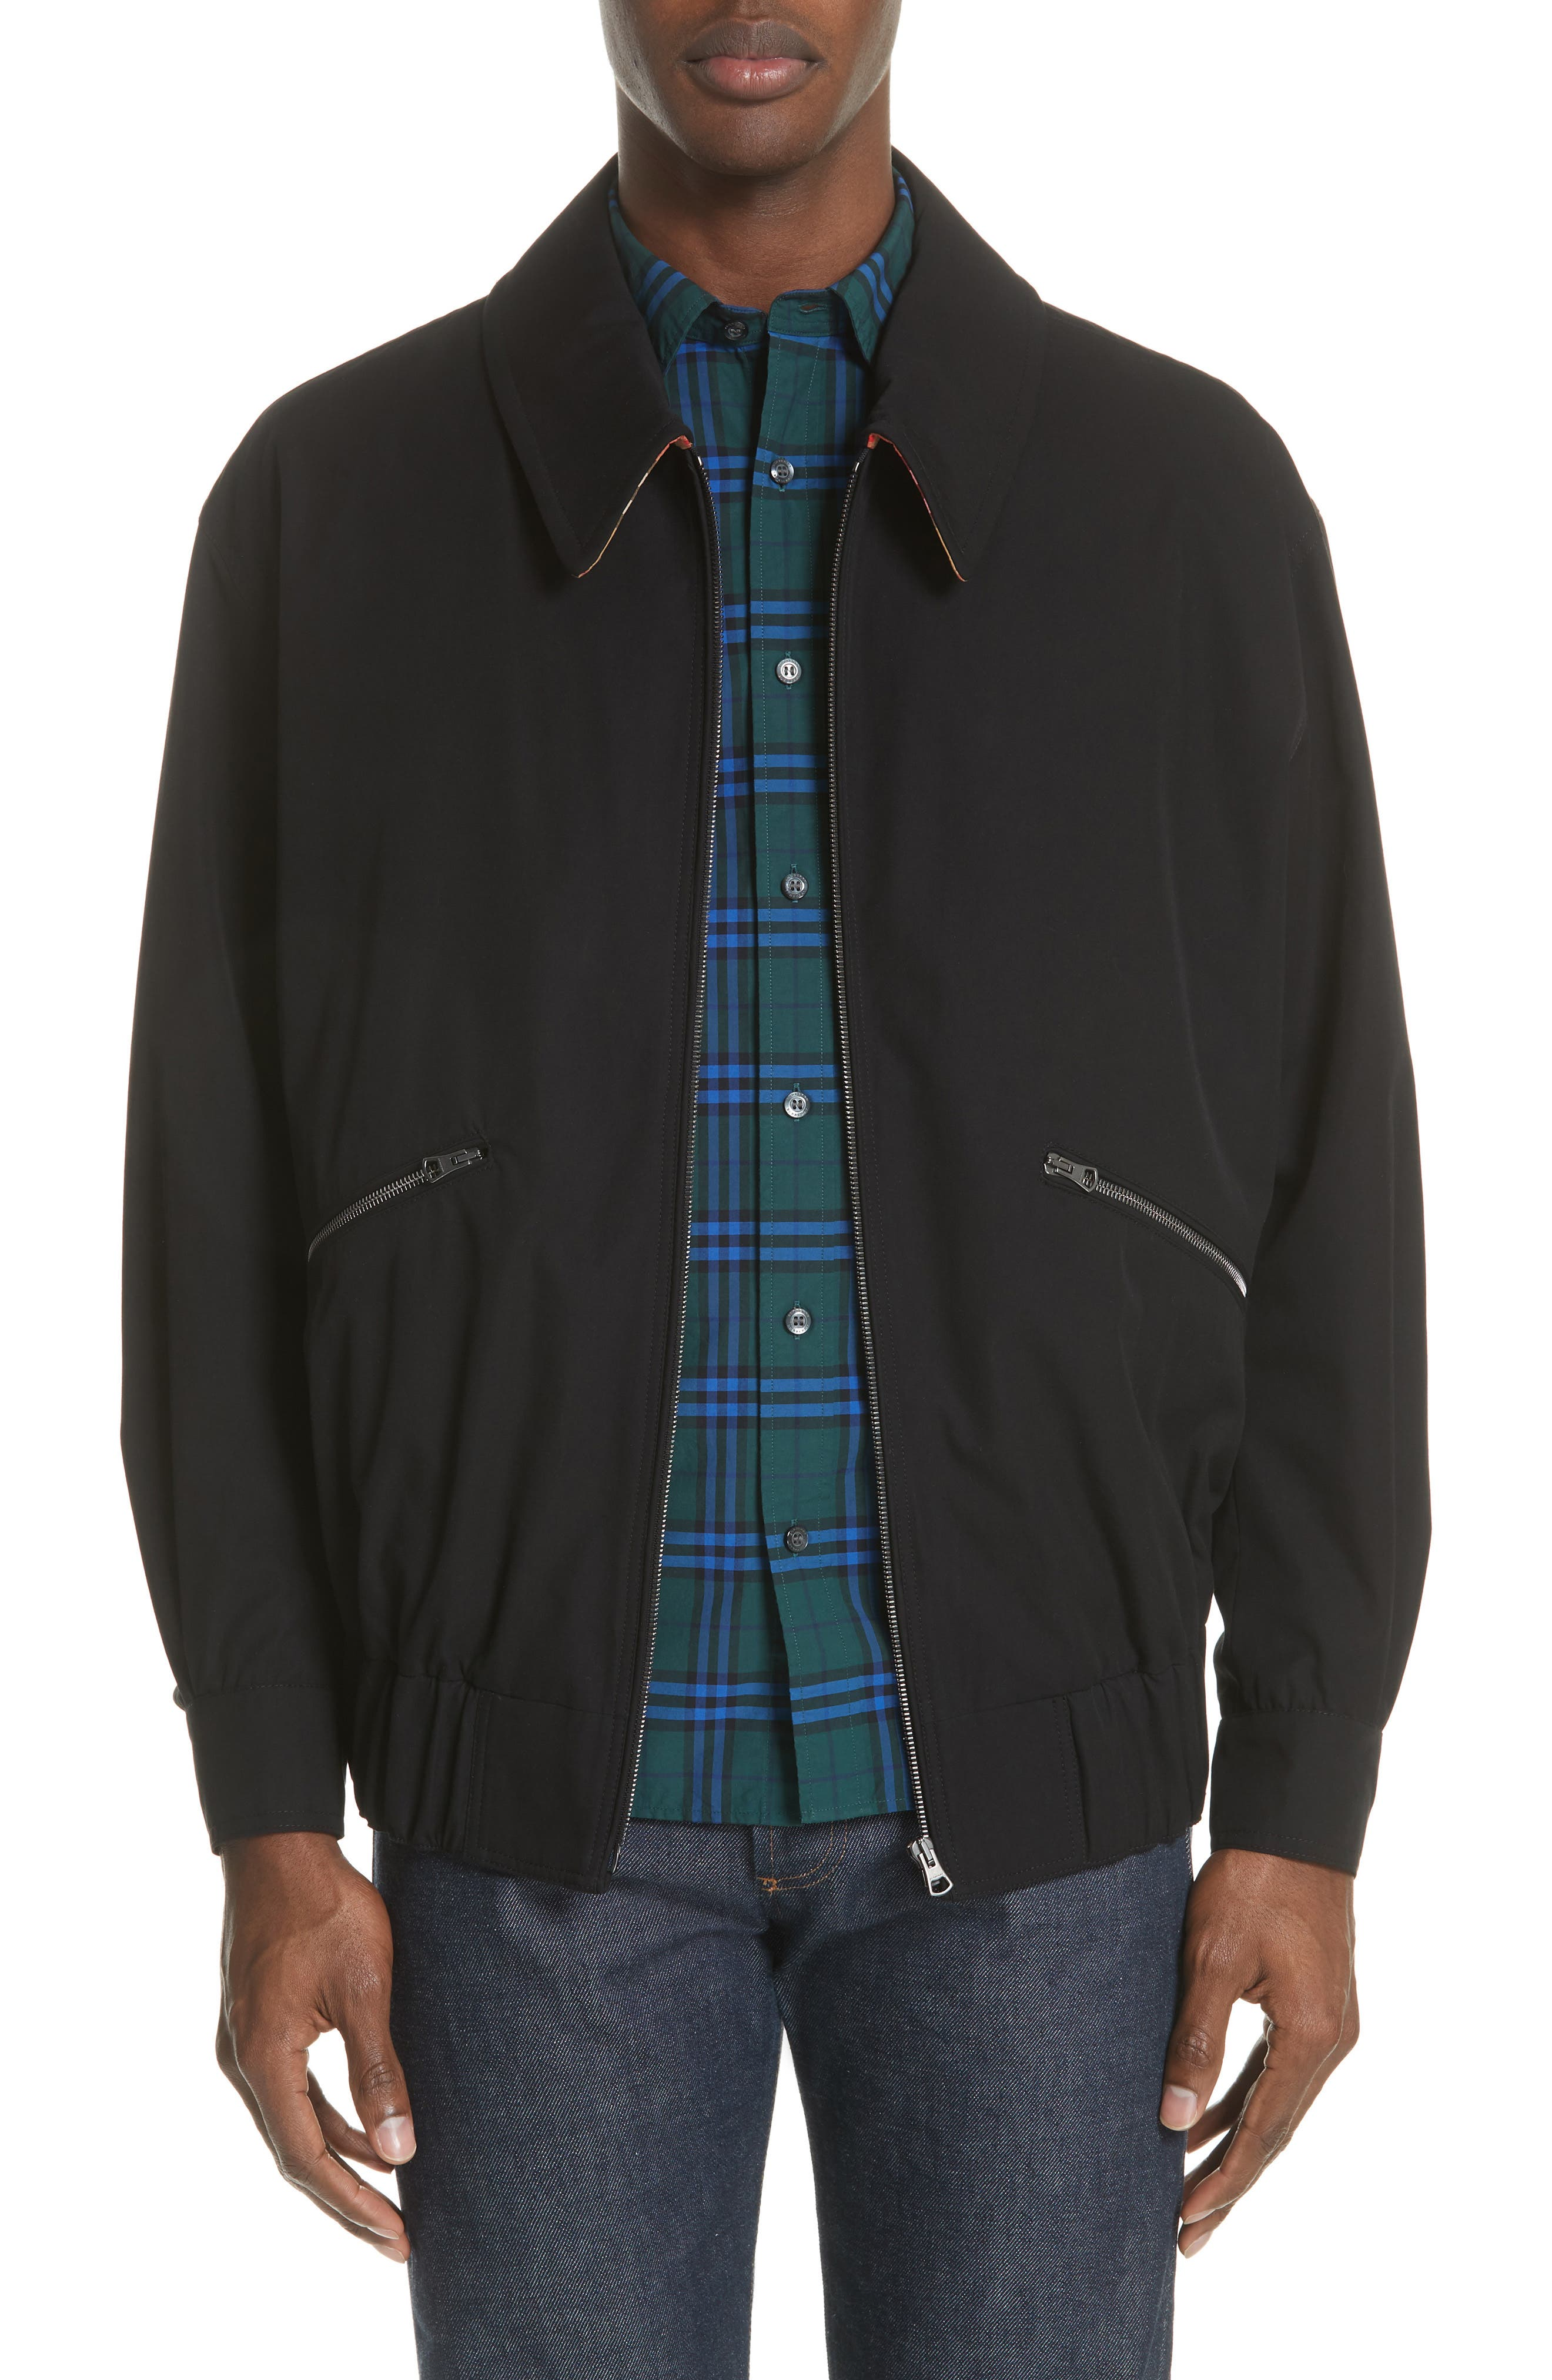 Loweswater Jacket,                         Main,                         color, Black